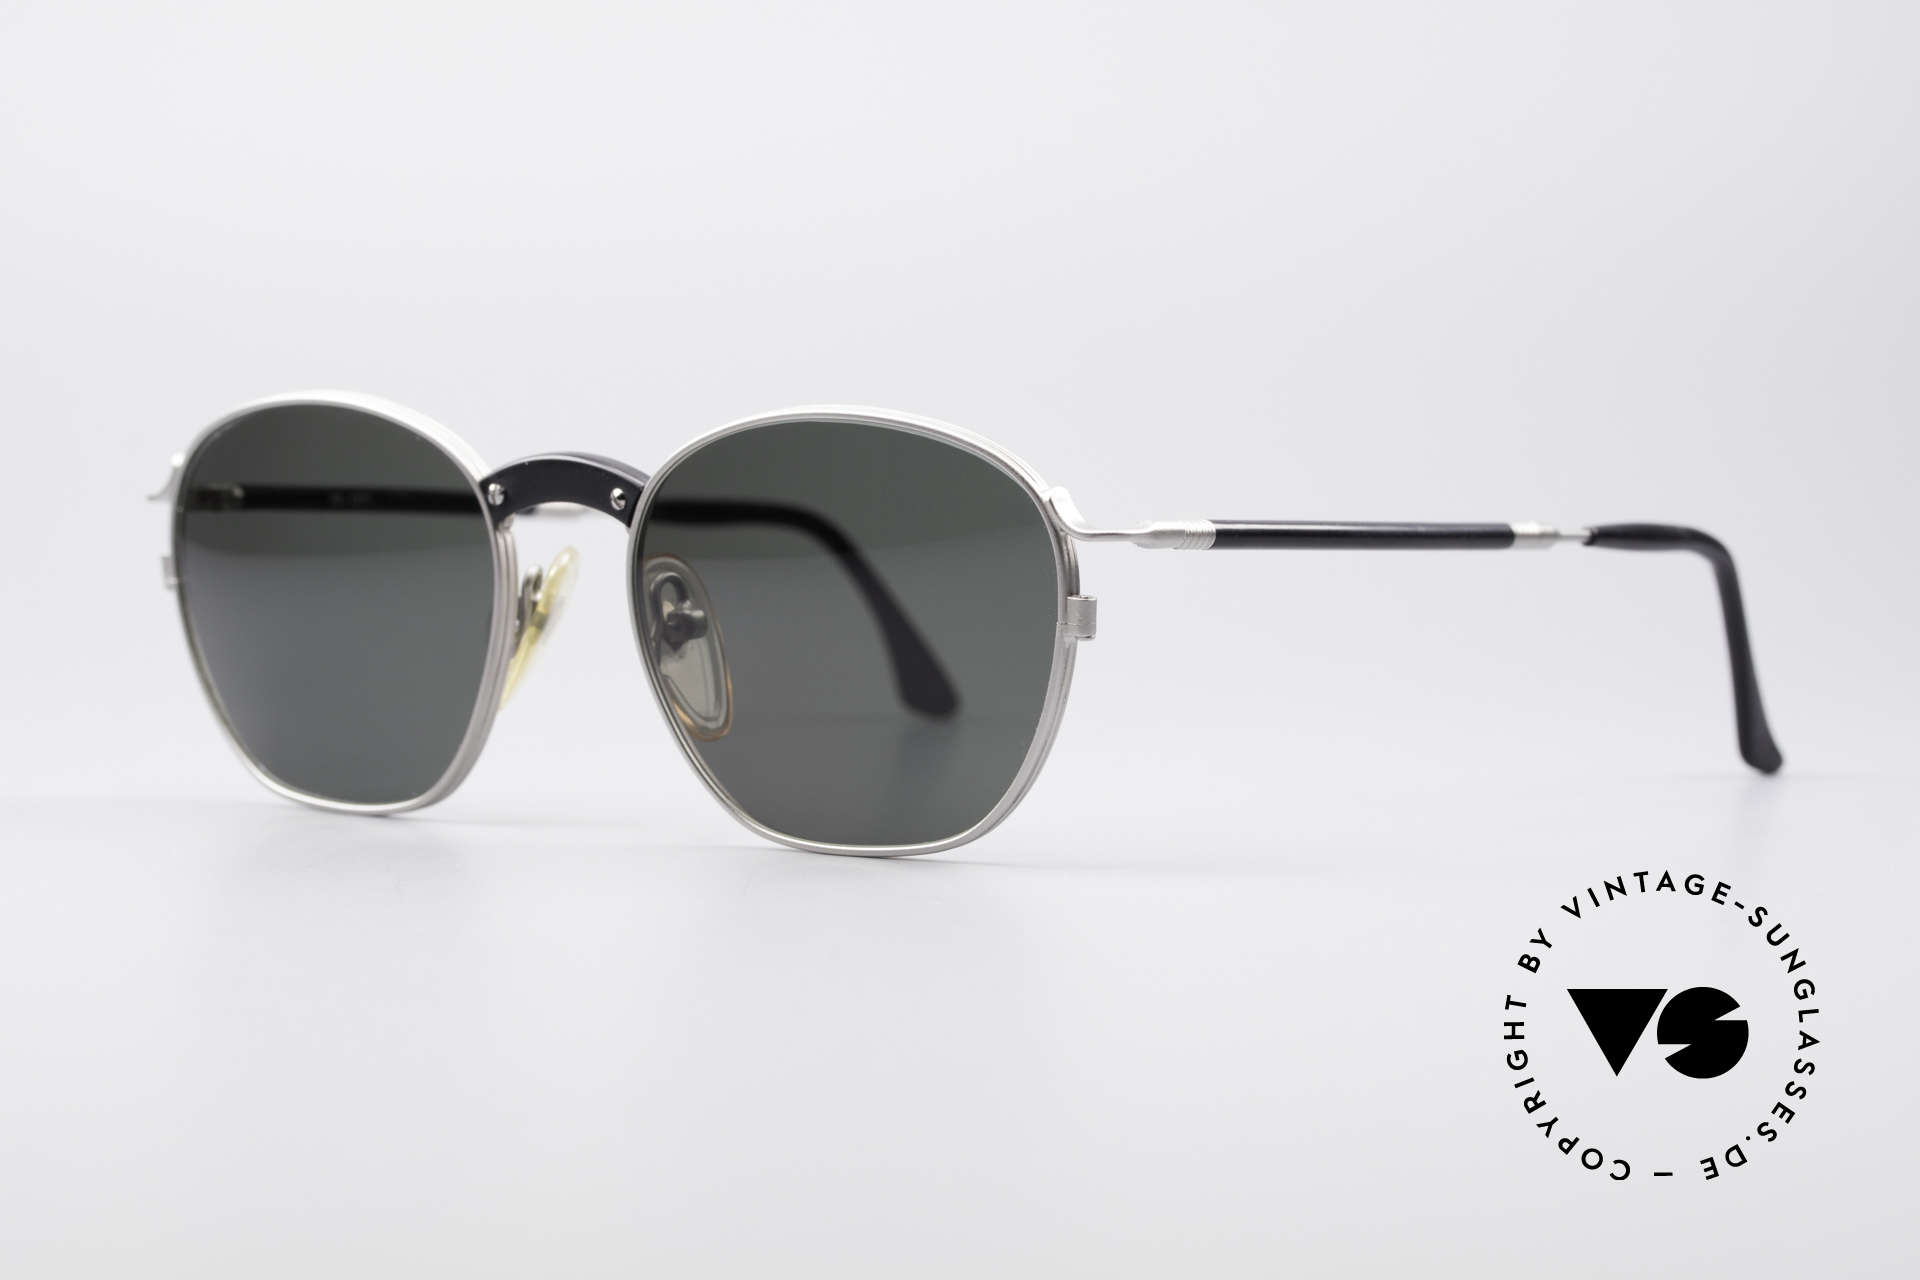 Jean Paul Gaultier 55-1271 Rare Vintage Sunglasses, simply a timeless classic in top-notch craftsmanship, Made for Men and Women